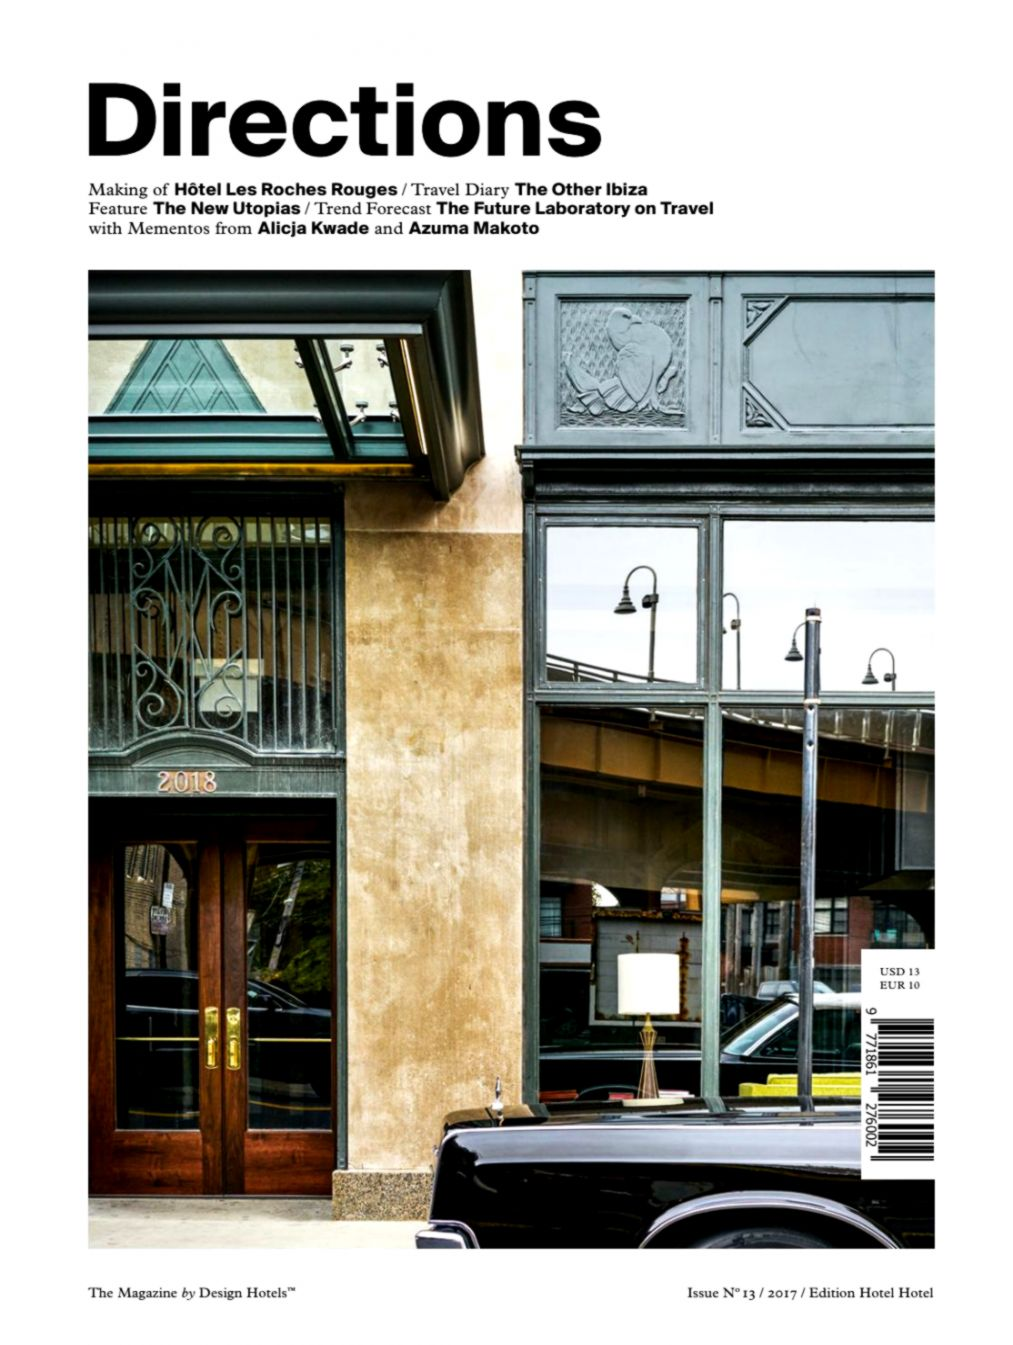 Directions – The Magazine by Design Hotels™ No 13 Issue 2017 by